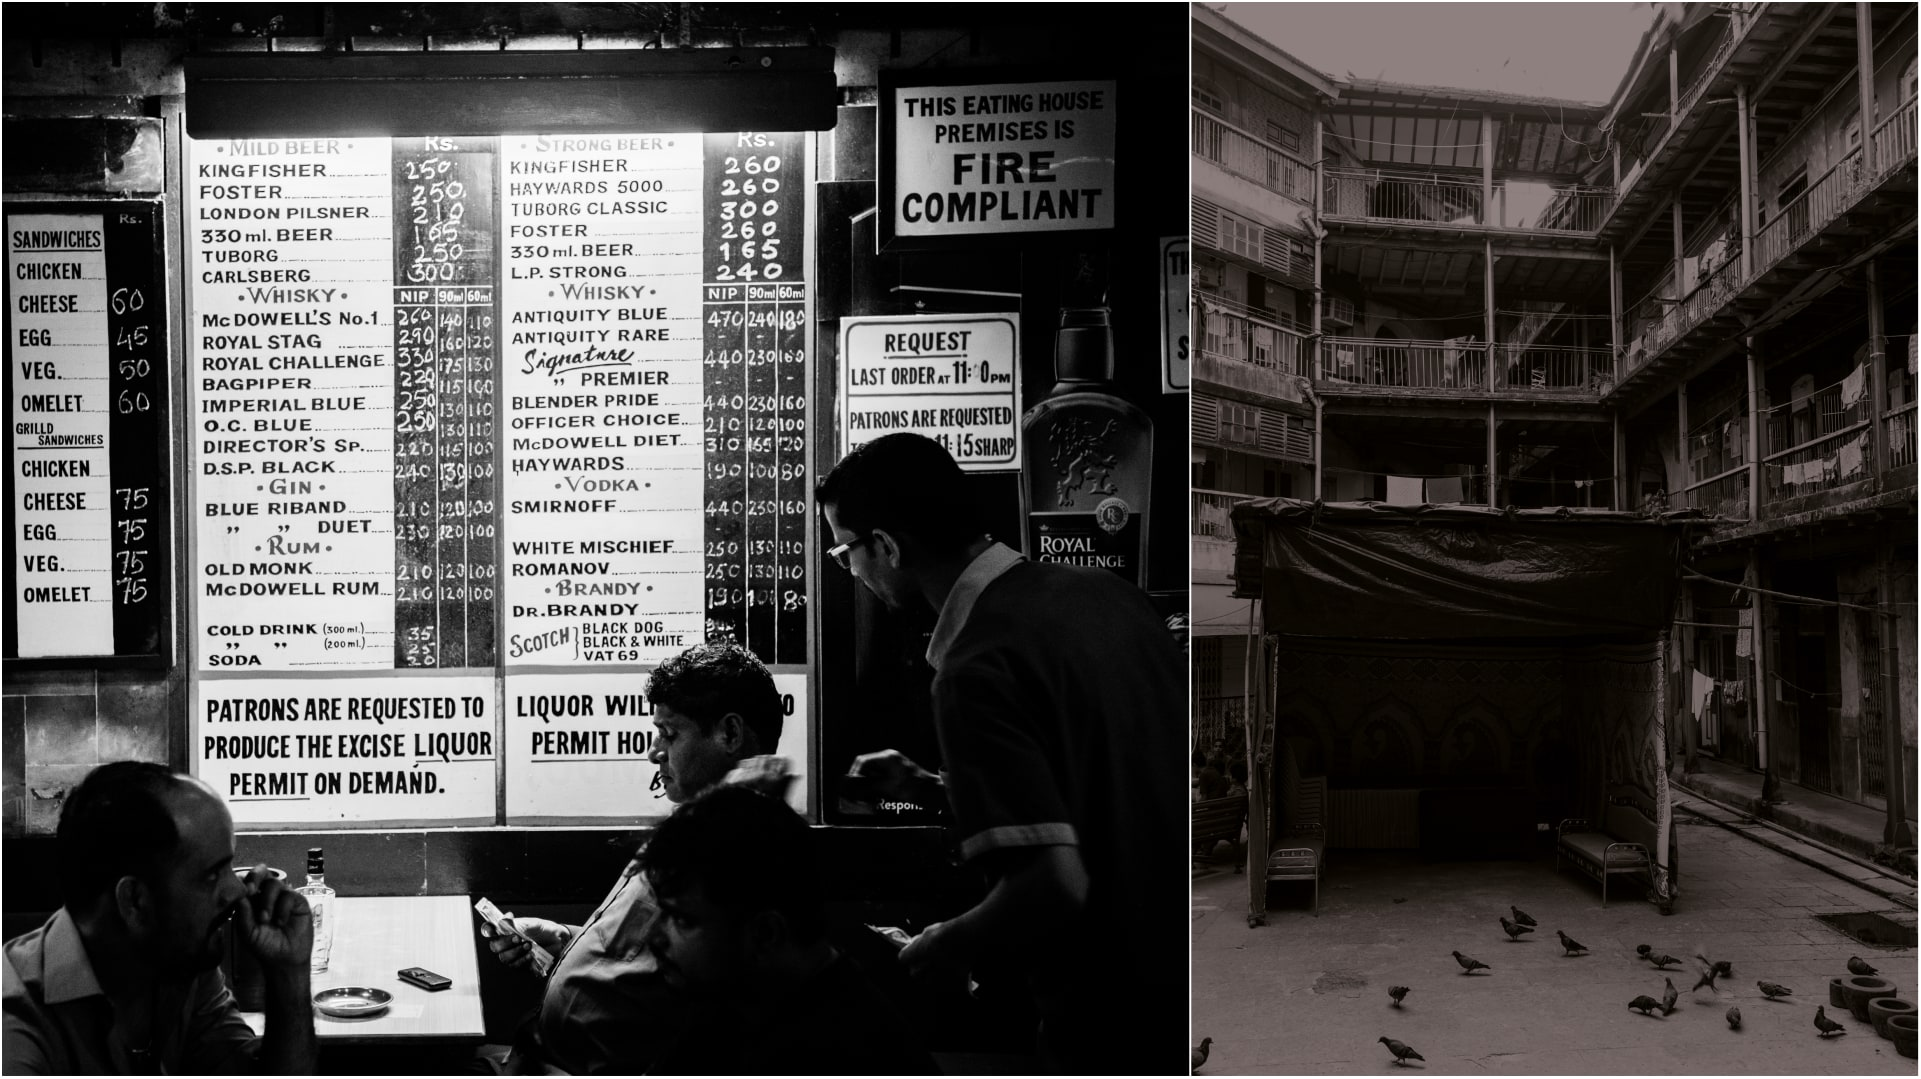 Revisiting Manto's Bombay, in words and pictures